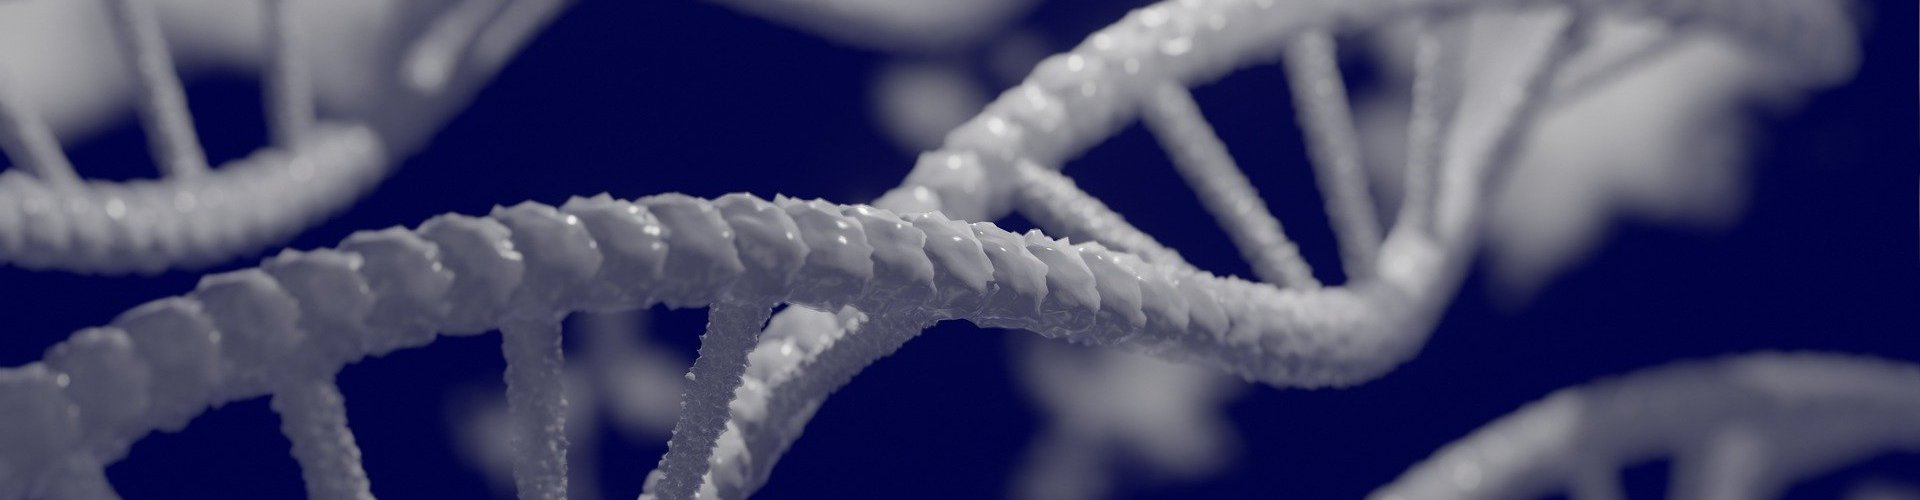 close up of DNA double helix